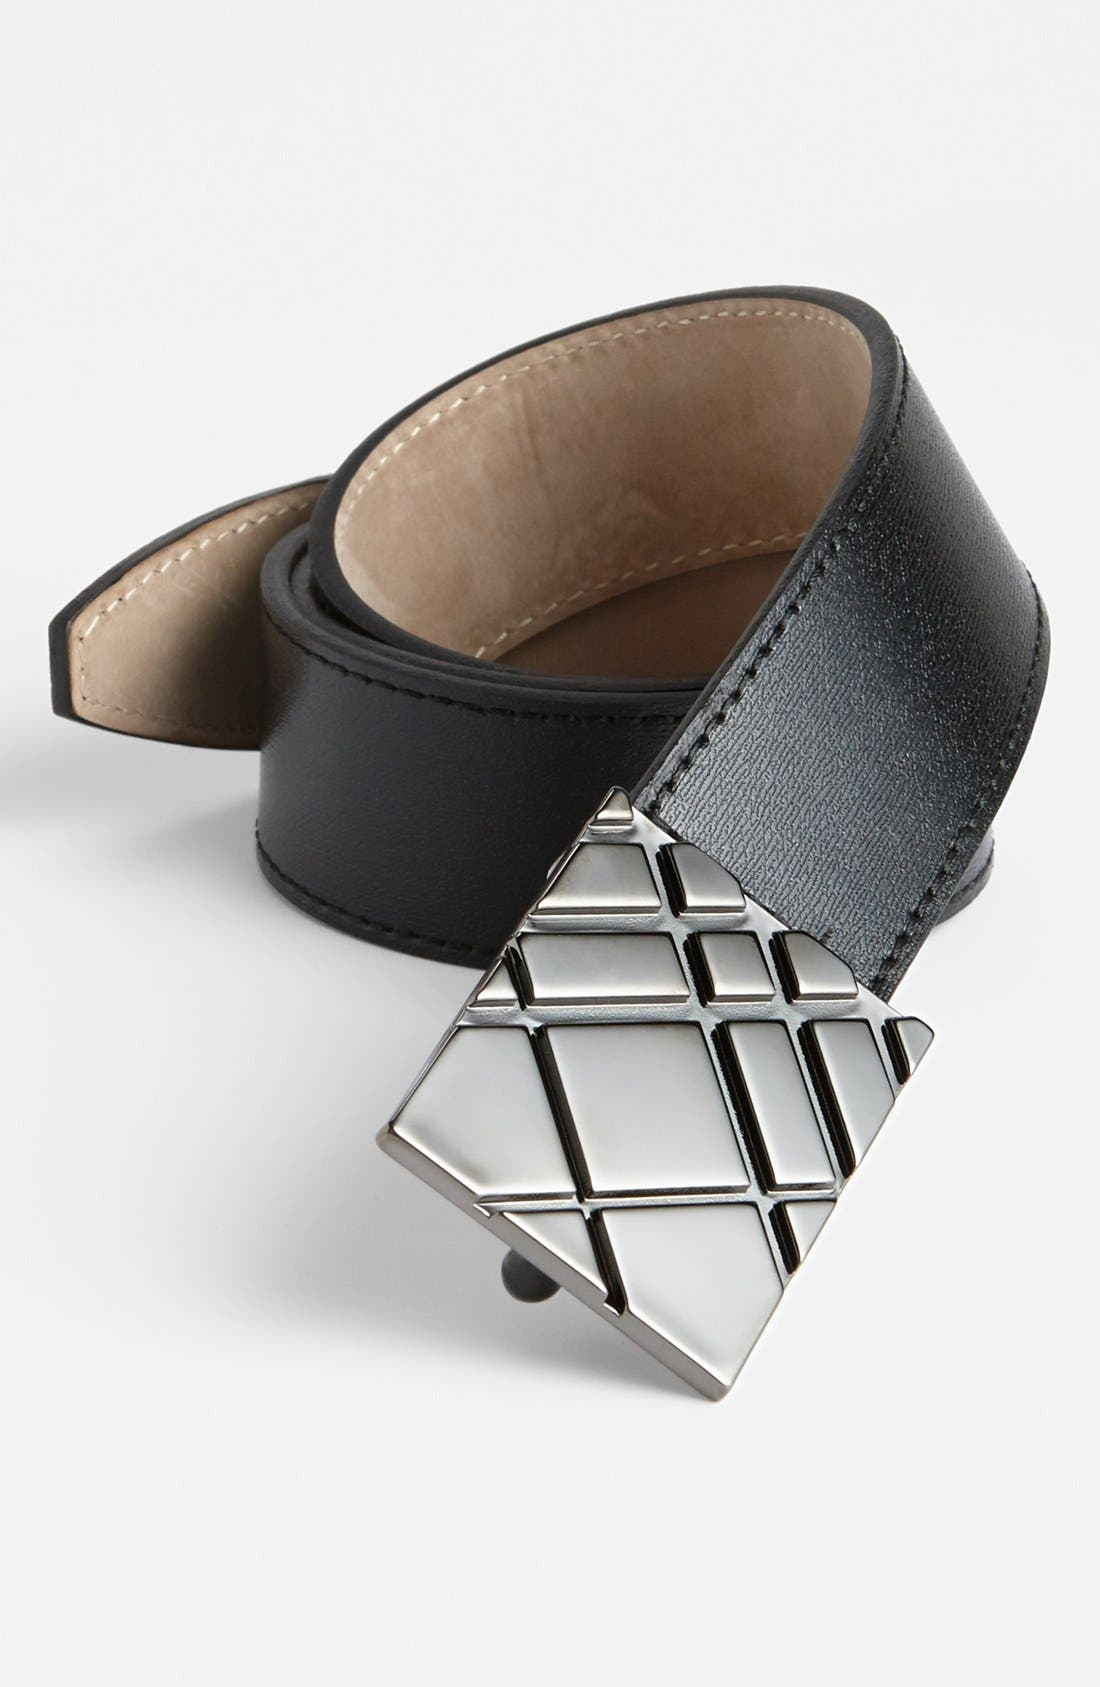 Main Image - Burberry 'Derry' Calfskin Leather Belt